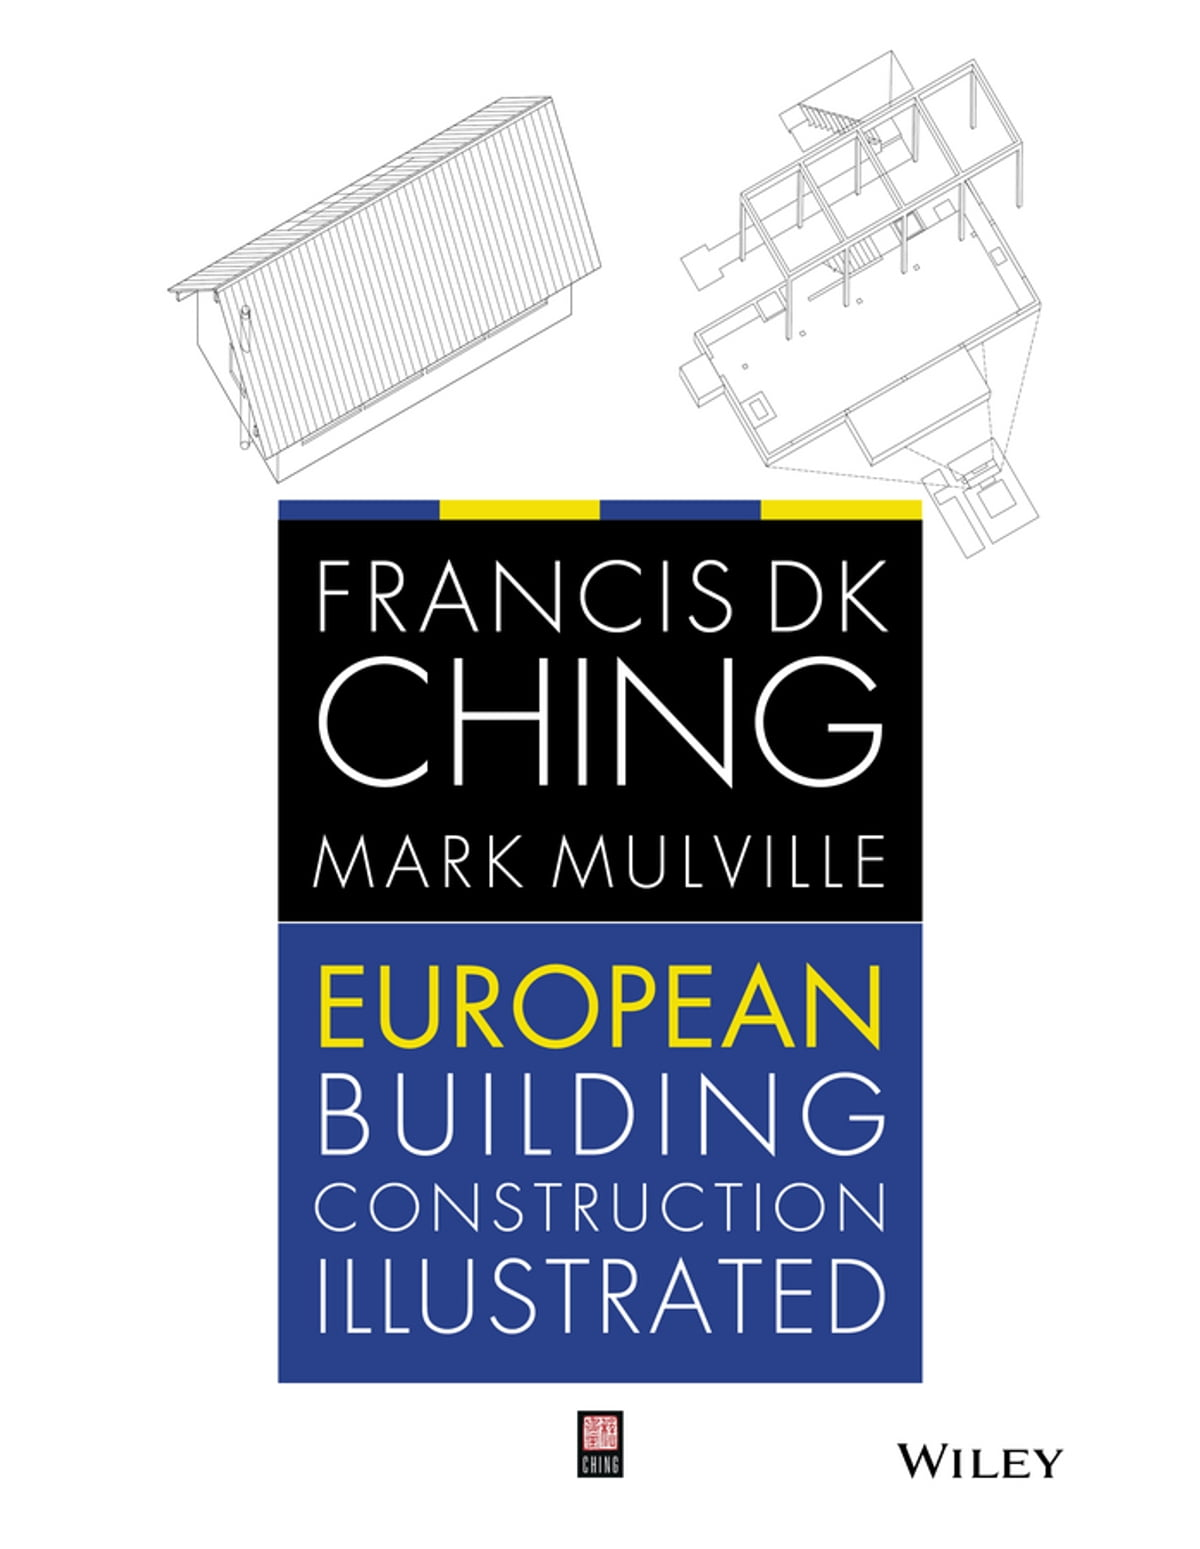 Building codes illustrated ebook by francis d k ching european building construction illustrated ebook by francis d k ching mark mulville fandeluxe Image collections